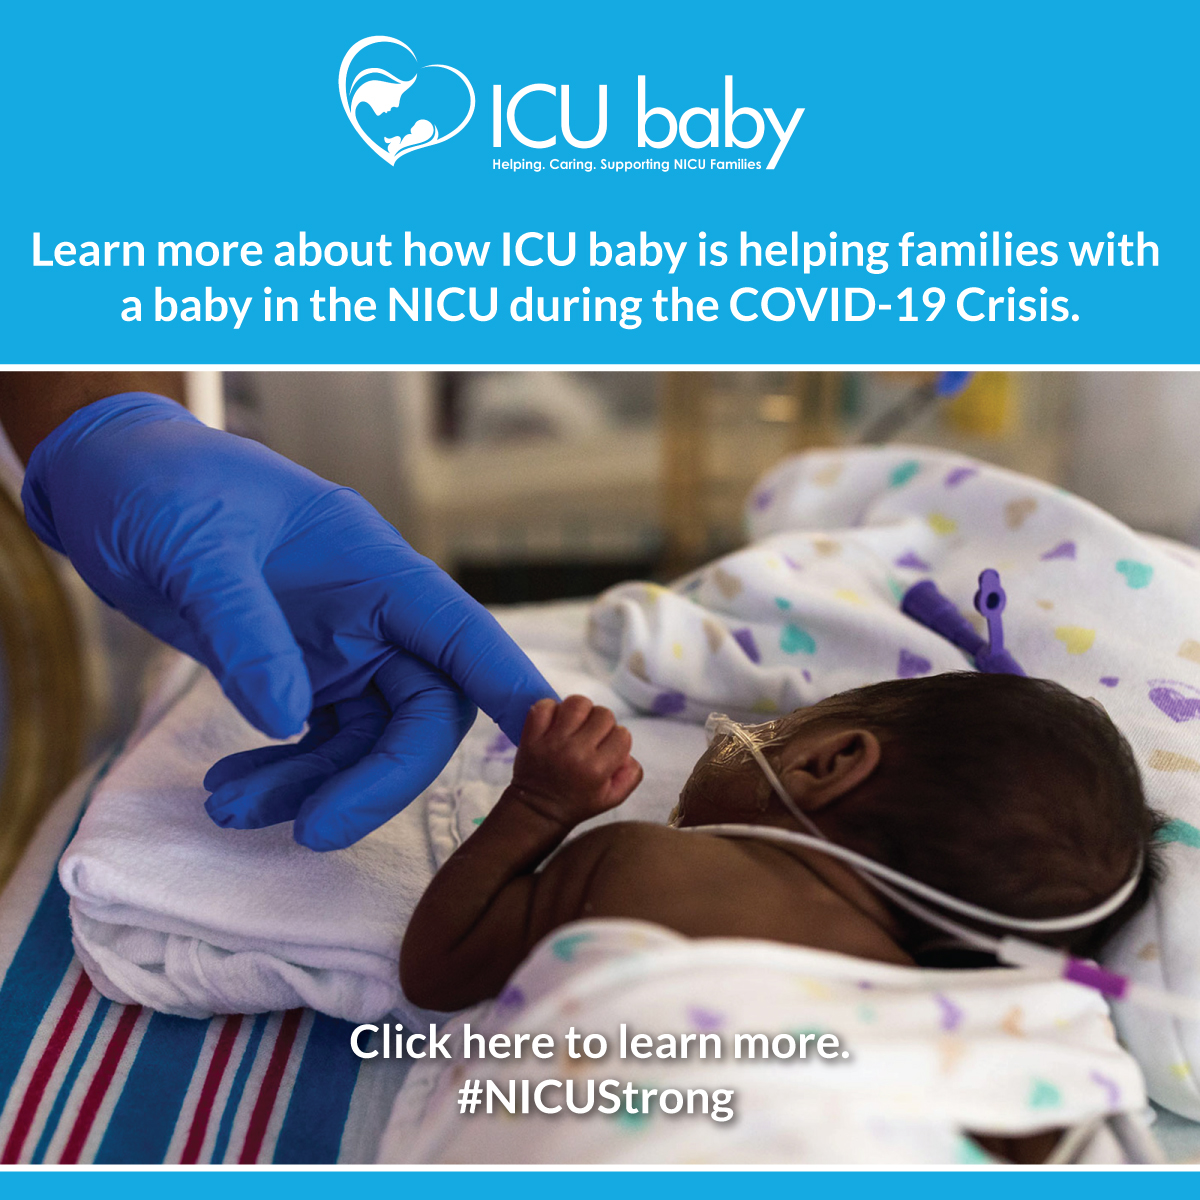 Learn more about how ICU baby is helping families with a baby in the NICU during the COVID-19 Pandemic